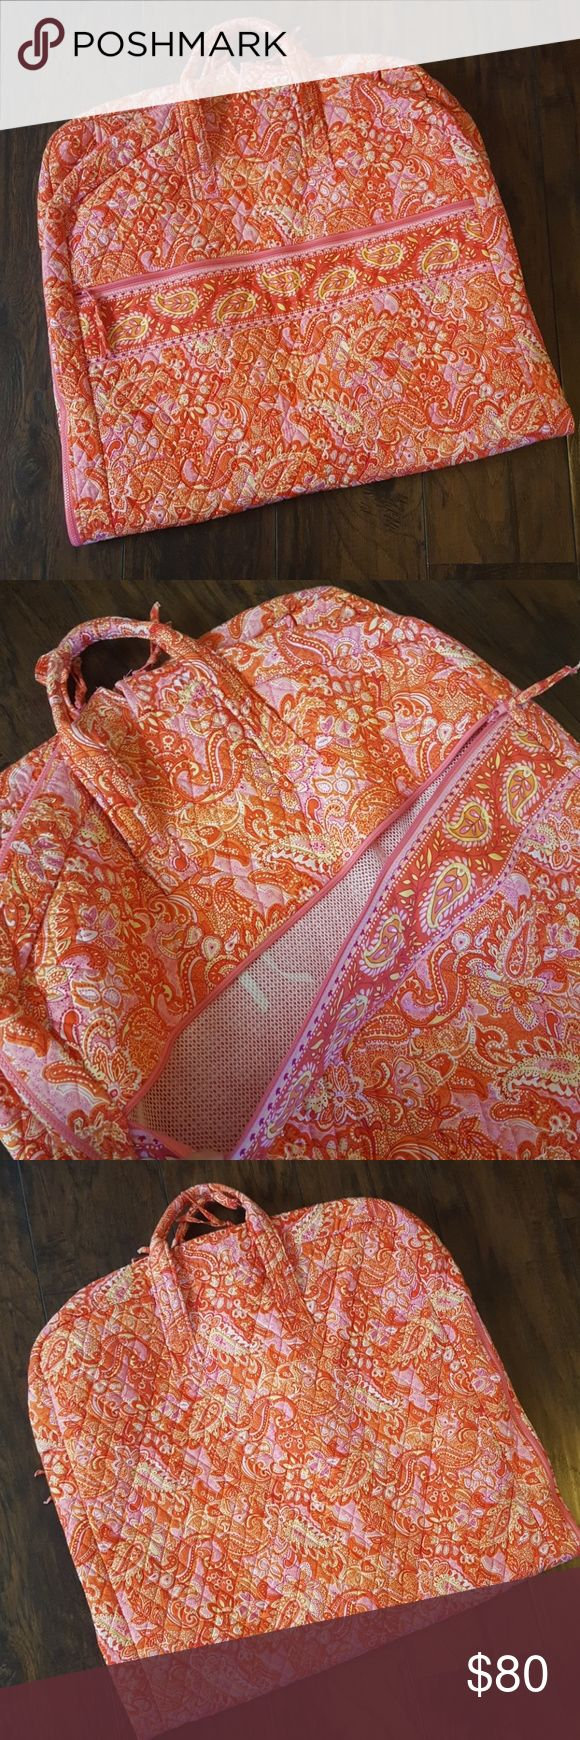 Vera Bradley garment bag in pink sherbet paisley Vera Bradley pink and orange paisley garment bag.  This bag is basically NWOT.  Only used once for a weekend trip.  Selling because I no longer have use for it. No rips, stains, tears.  Excellent condition.  Paid $130 at Hallmark. Vera Bradley Bags Travel Bags